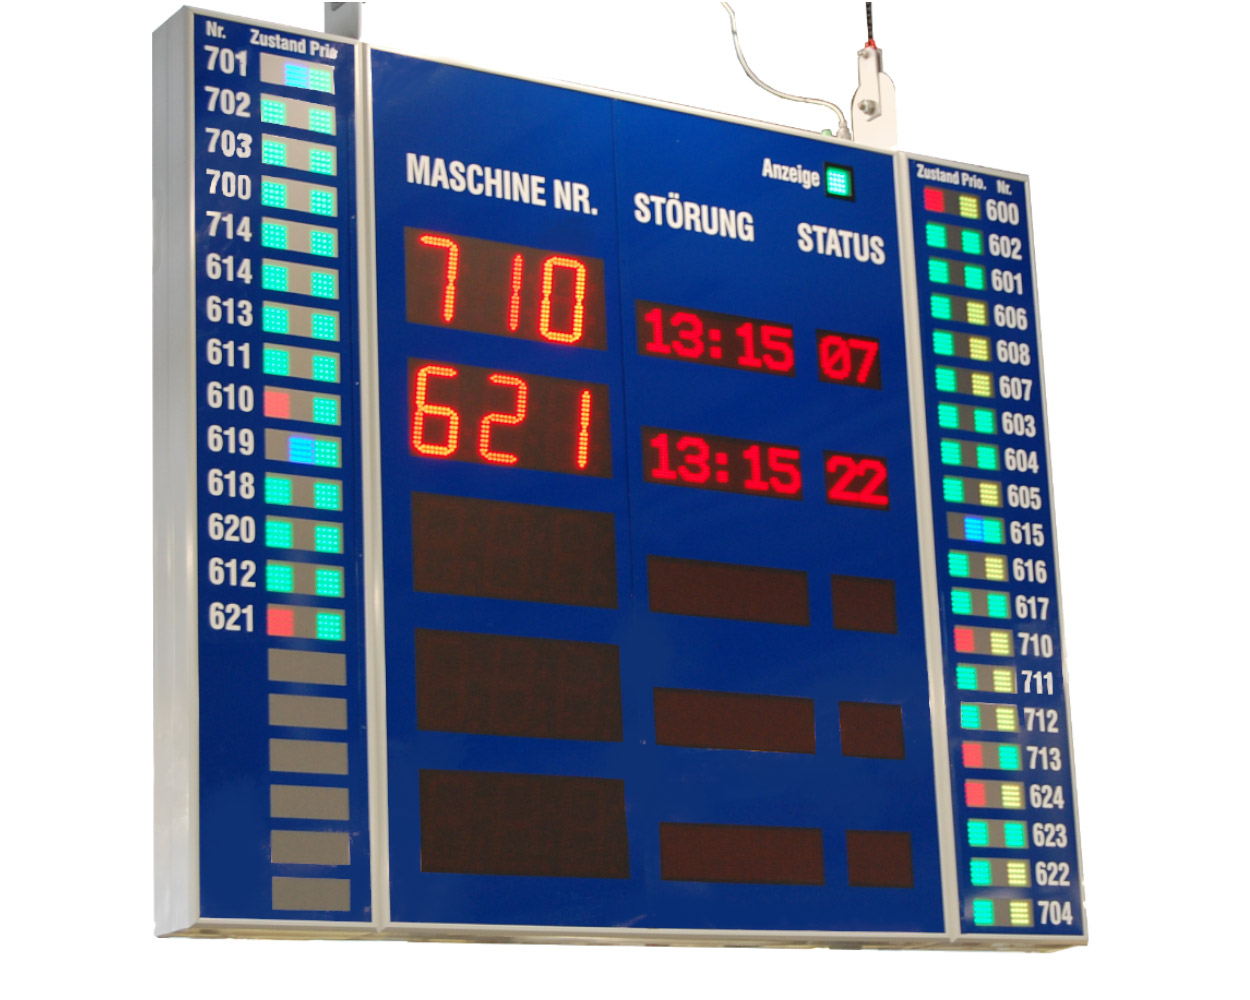 Fault indication, double-sided readable, 40x3 light panels status, dimensions 2100x2500x200 mm